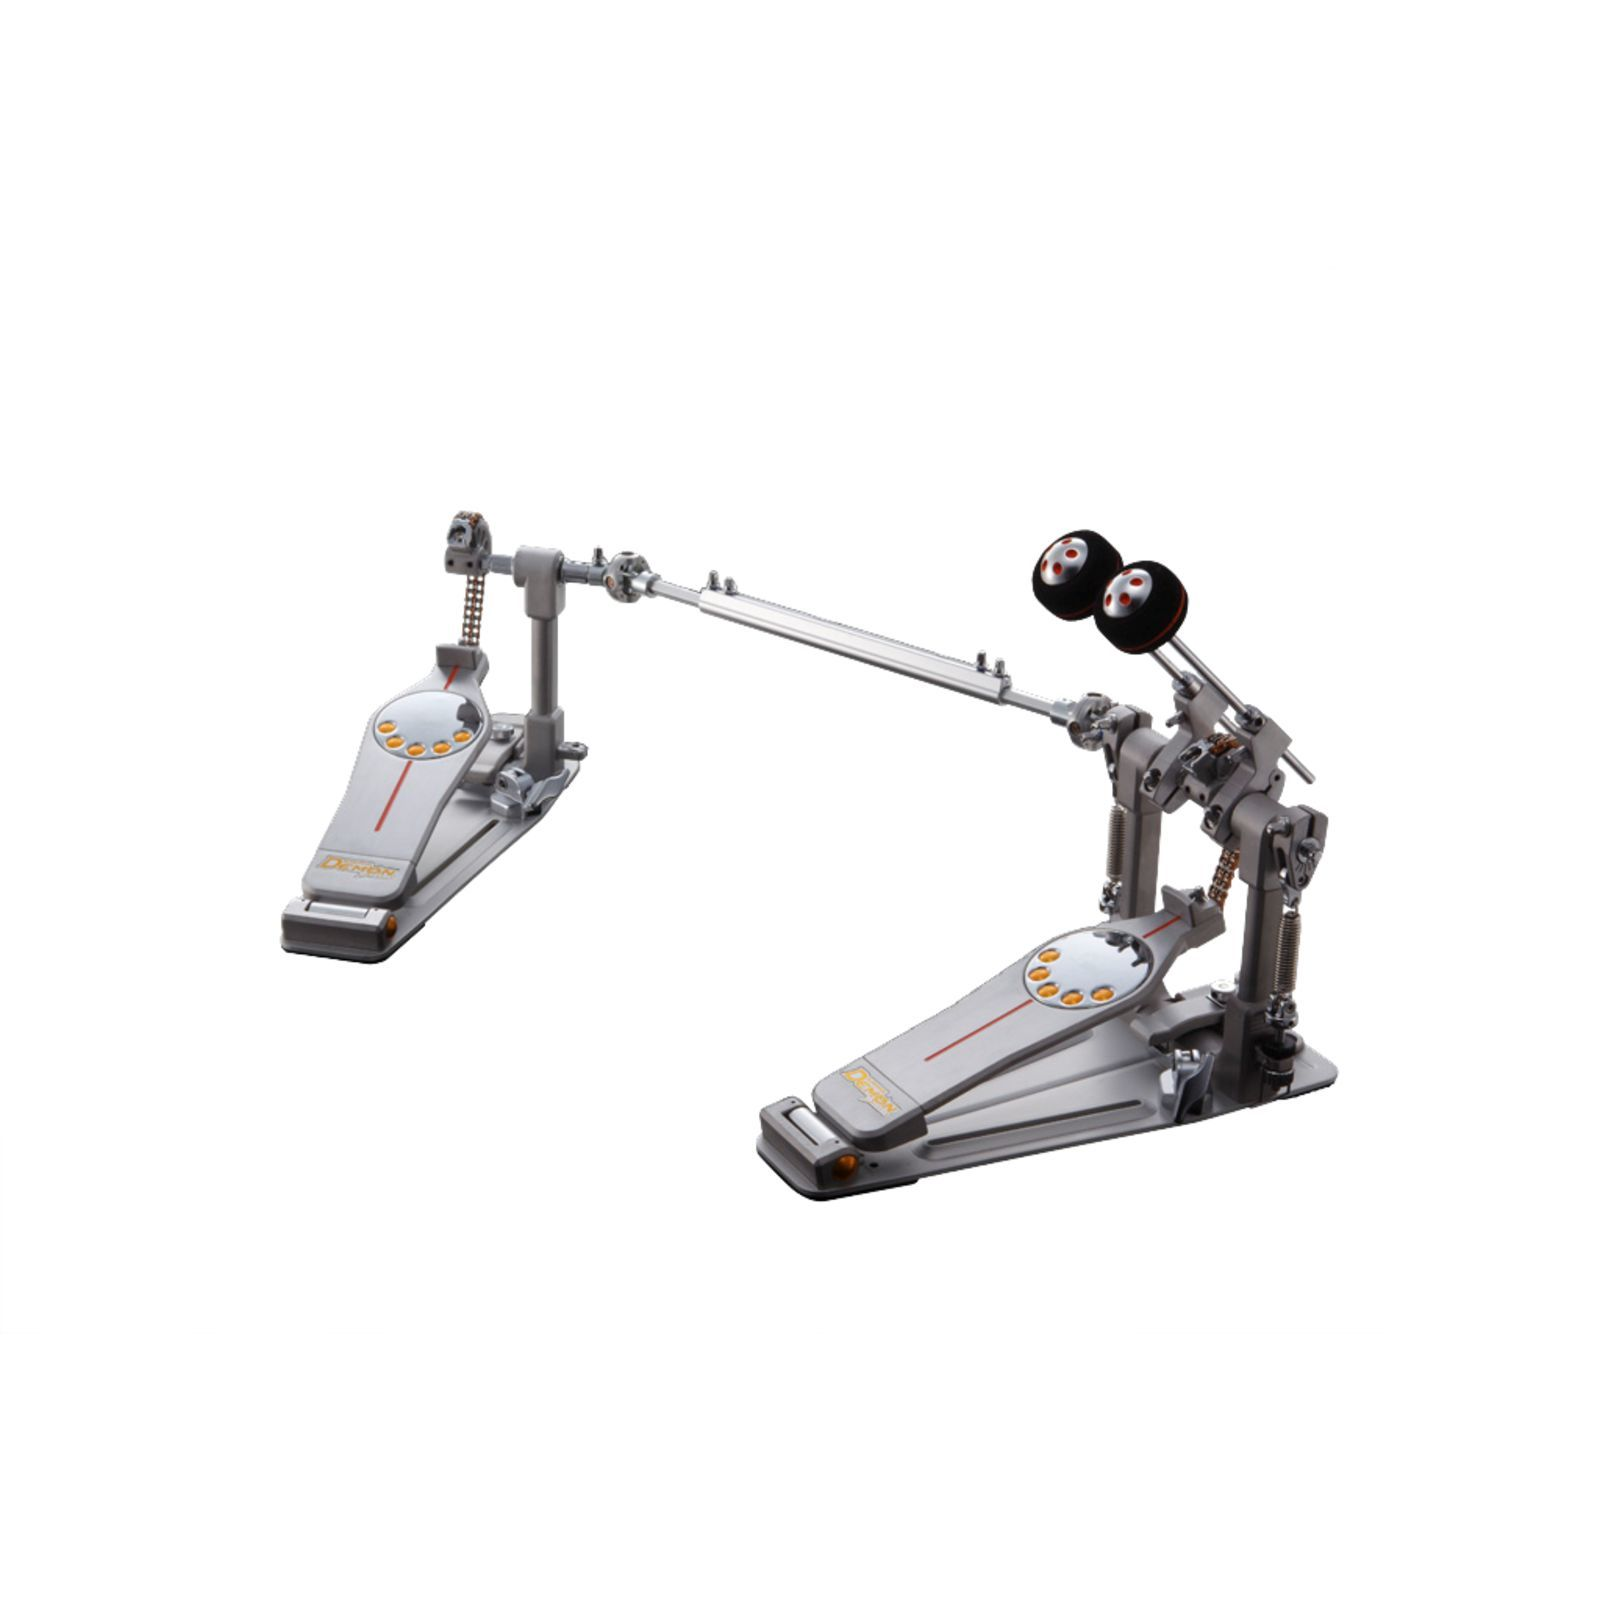 Pearl Double Pedal Demon Drive, Chain Dr., incl. Case, B-Stock Product Image